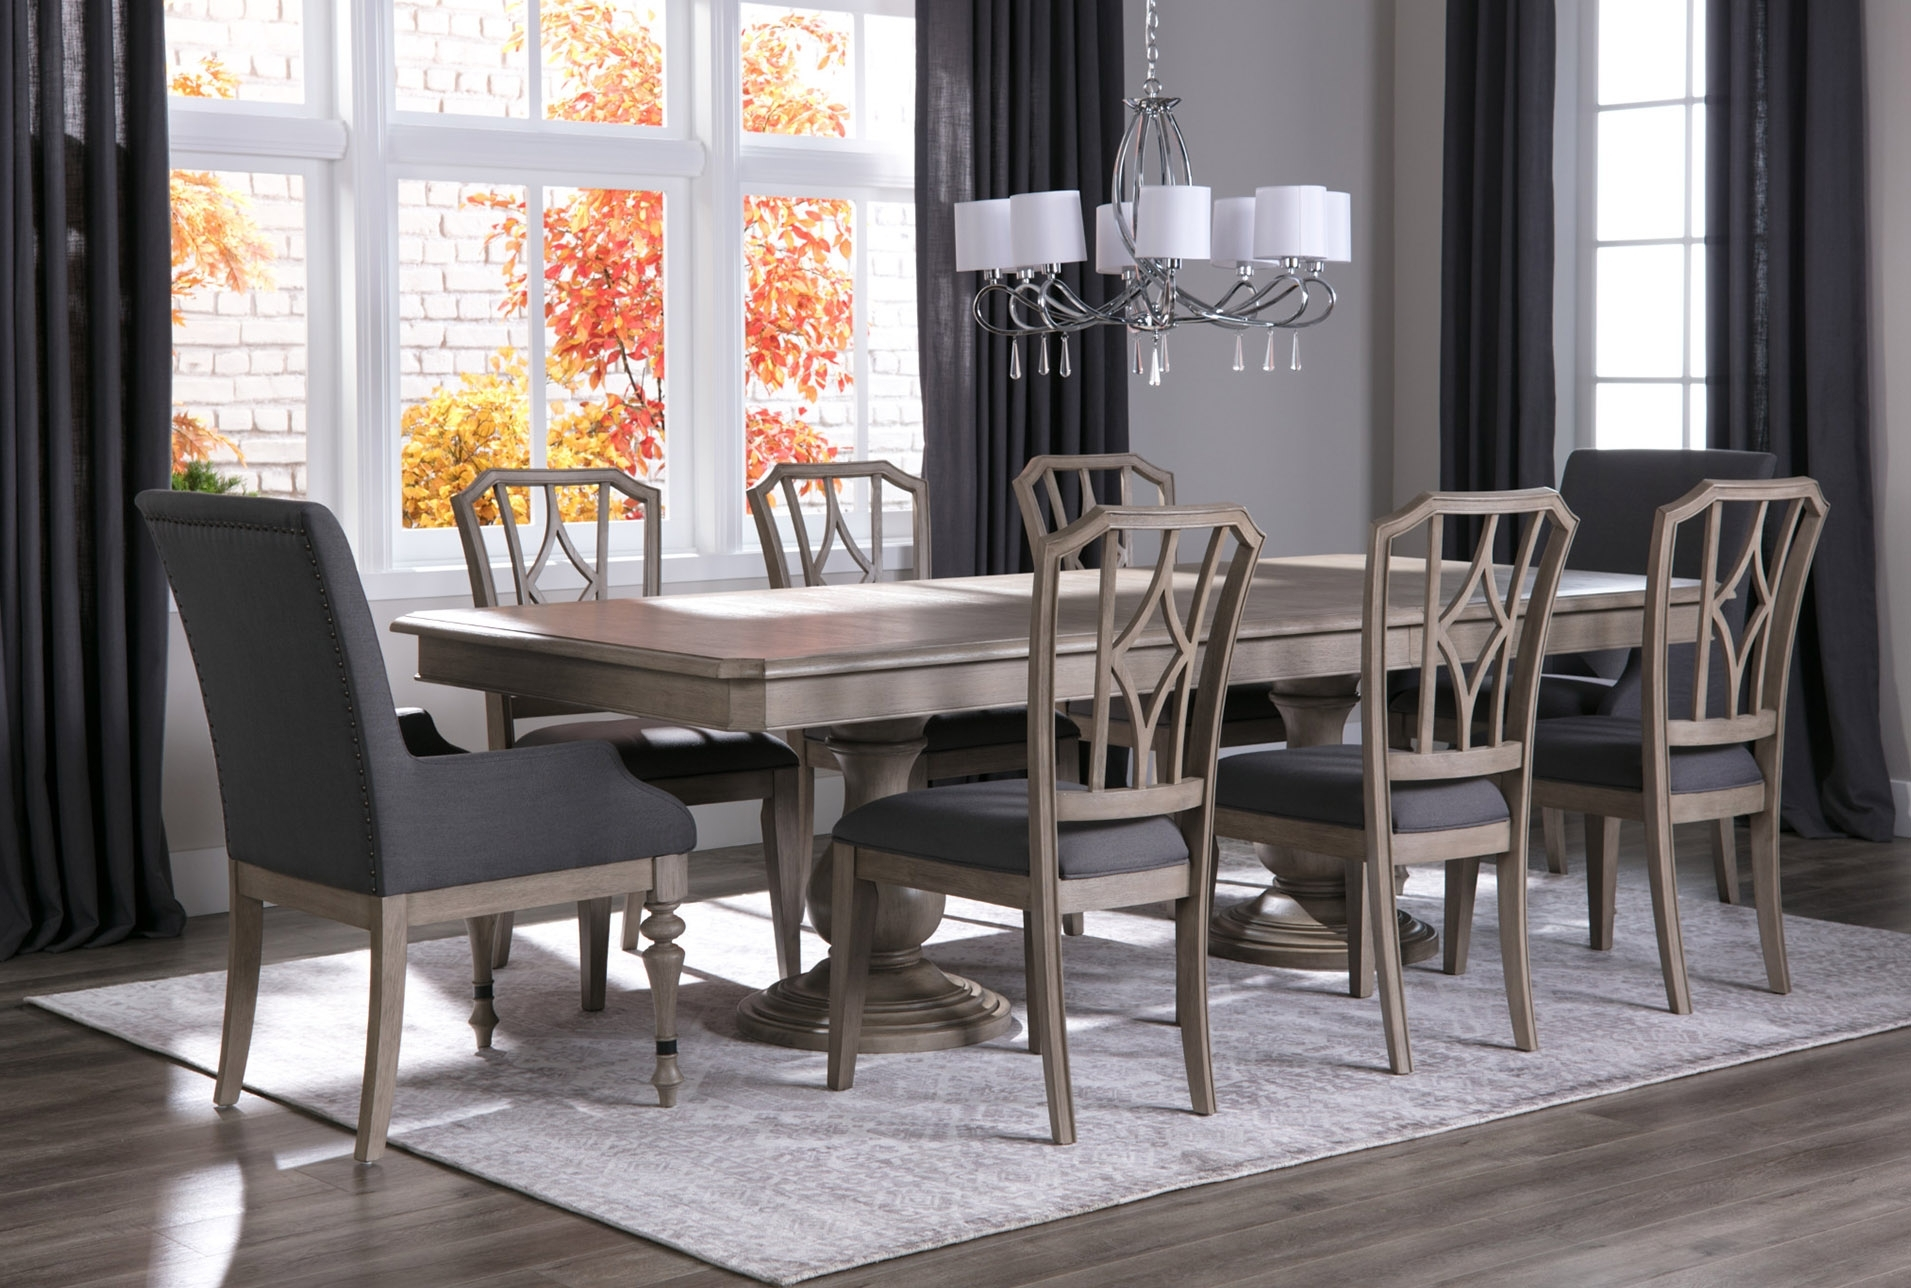 Lätt Bockbord Att Bygga, Rundstav Som Fixerar Planken, Lät Within Latest Caira 7 Piece Rectangular Dining Sets With Diamond Back Side Chairs (Photo 9 of 20)